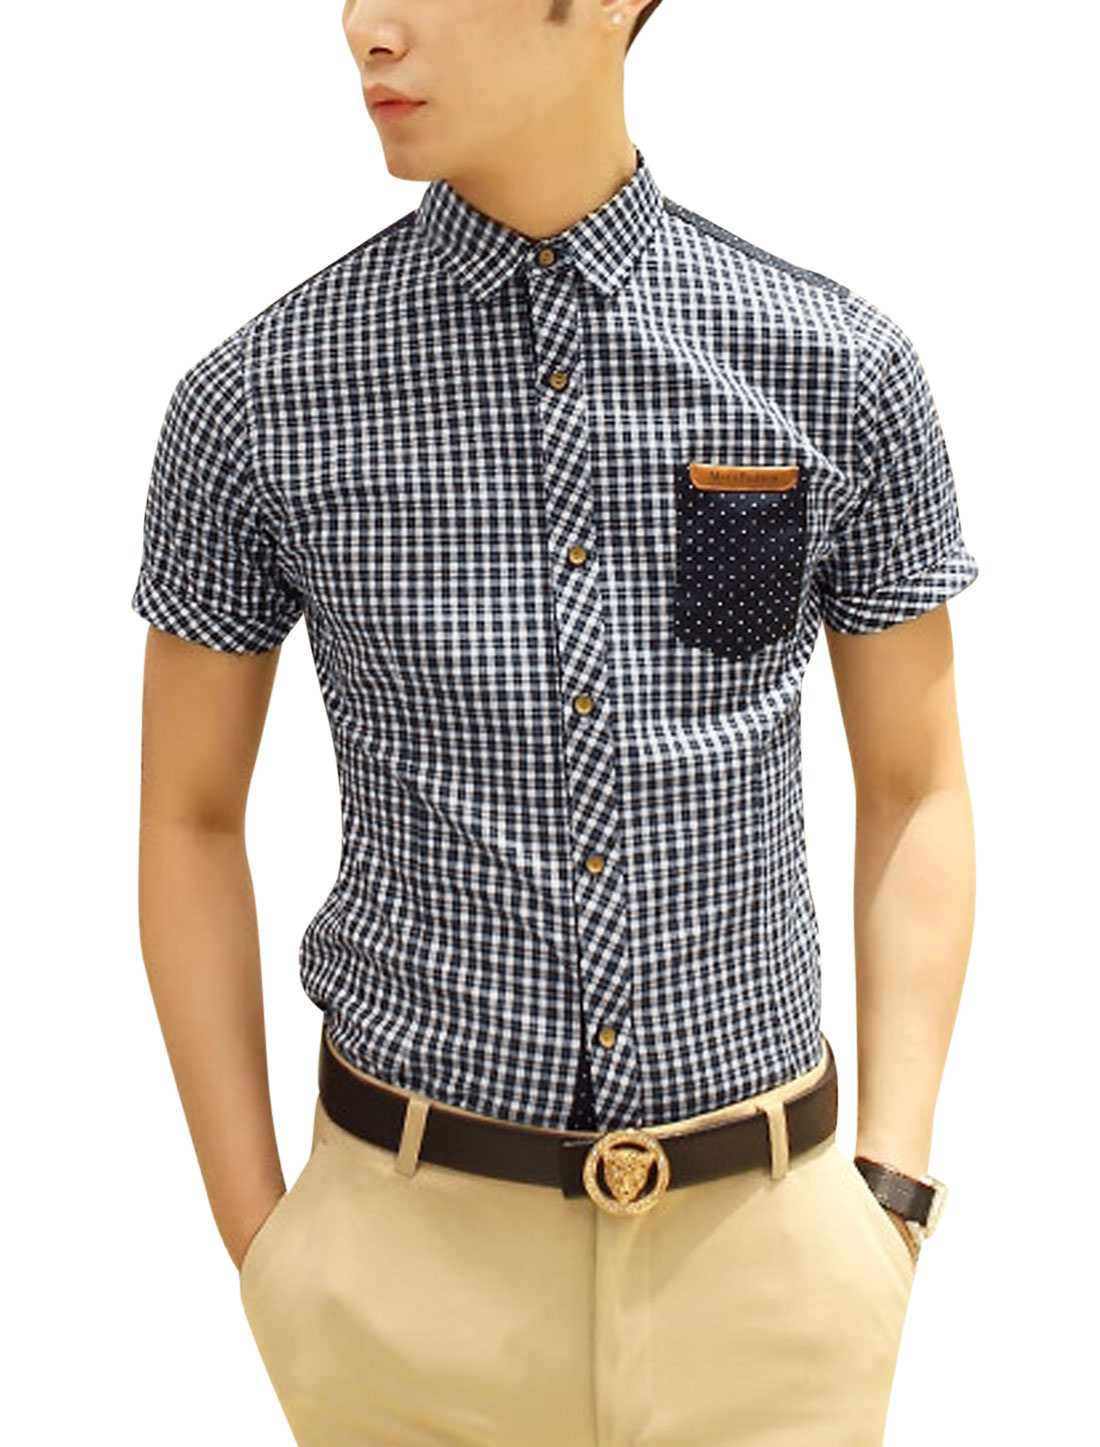 Men Short Sleeve One Chest Pocket Spliced Blue Plaids Dots Pattern Shirt M